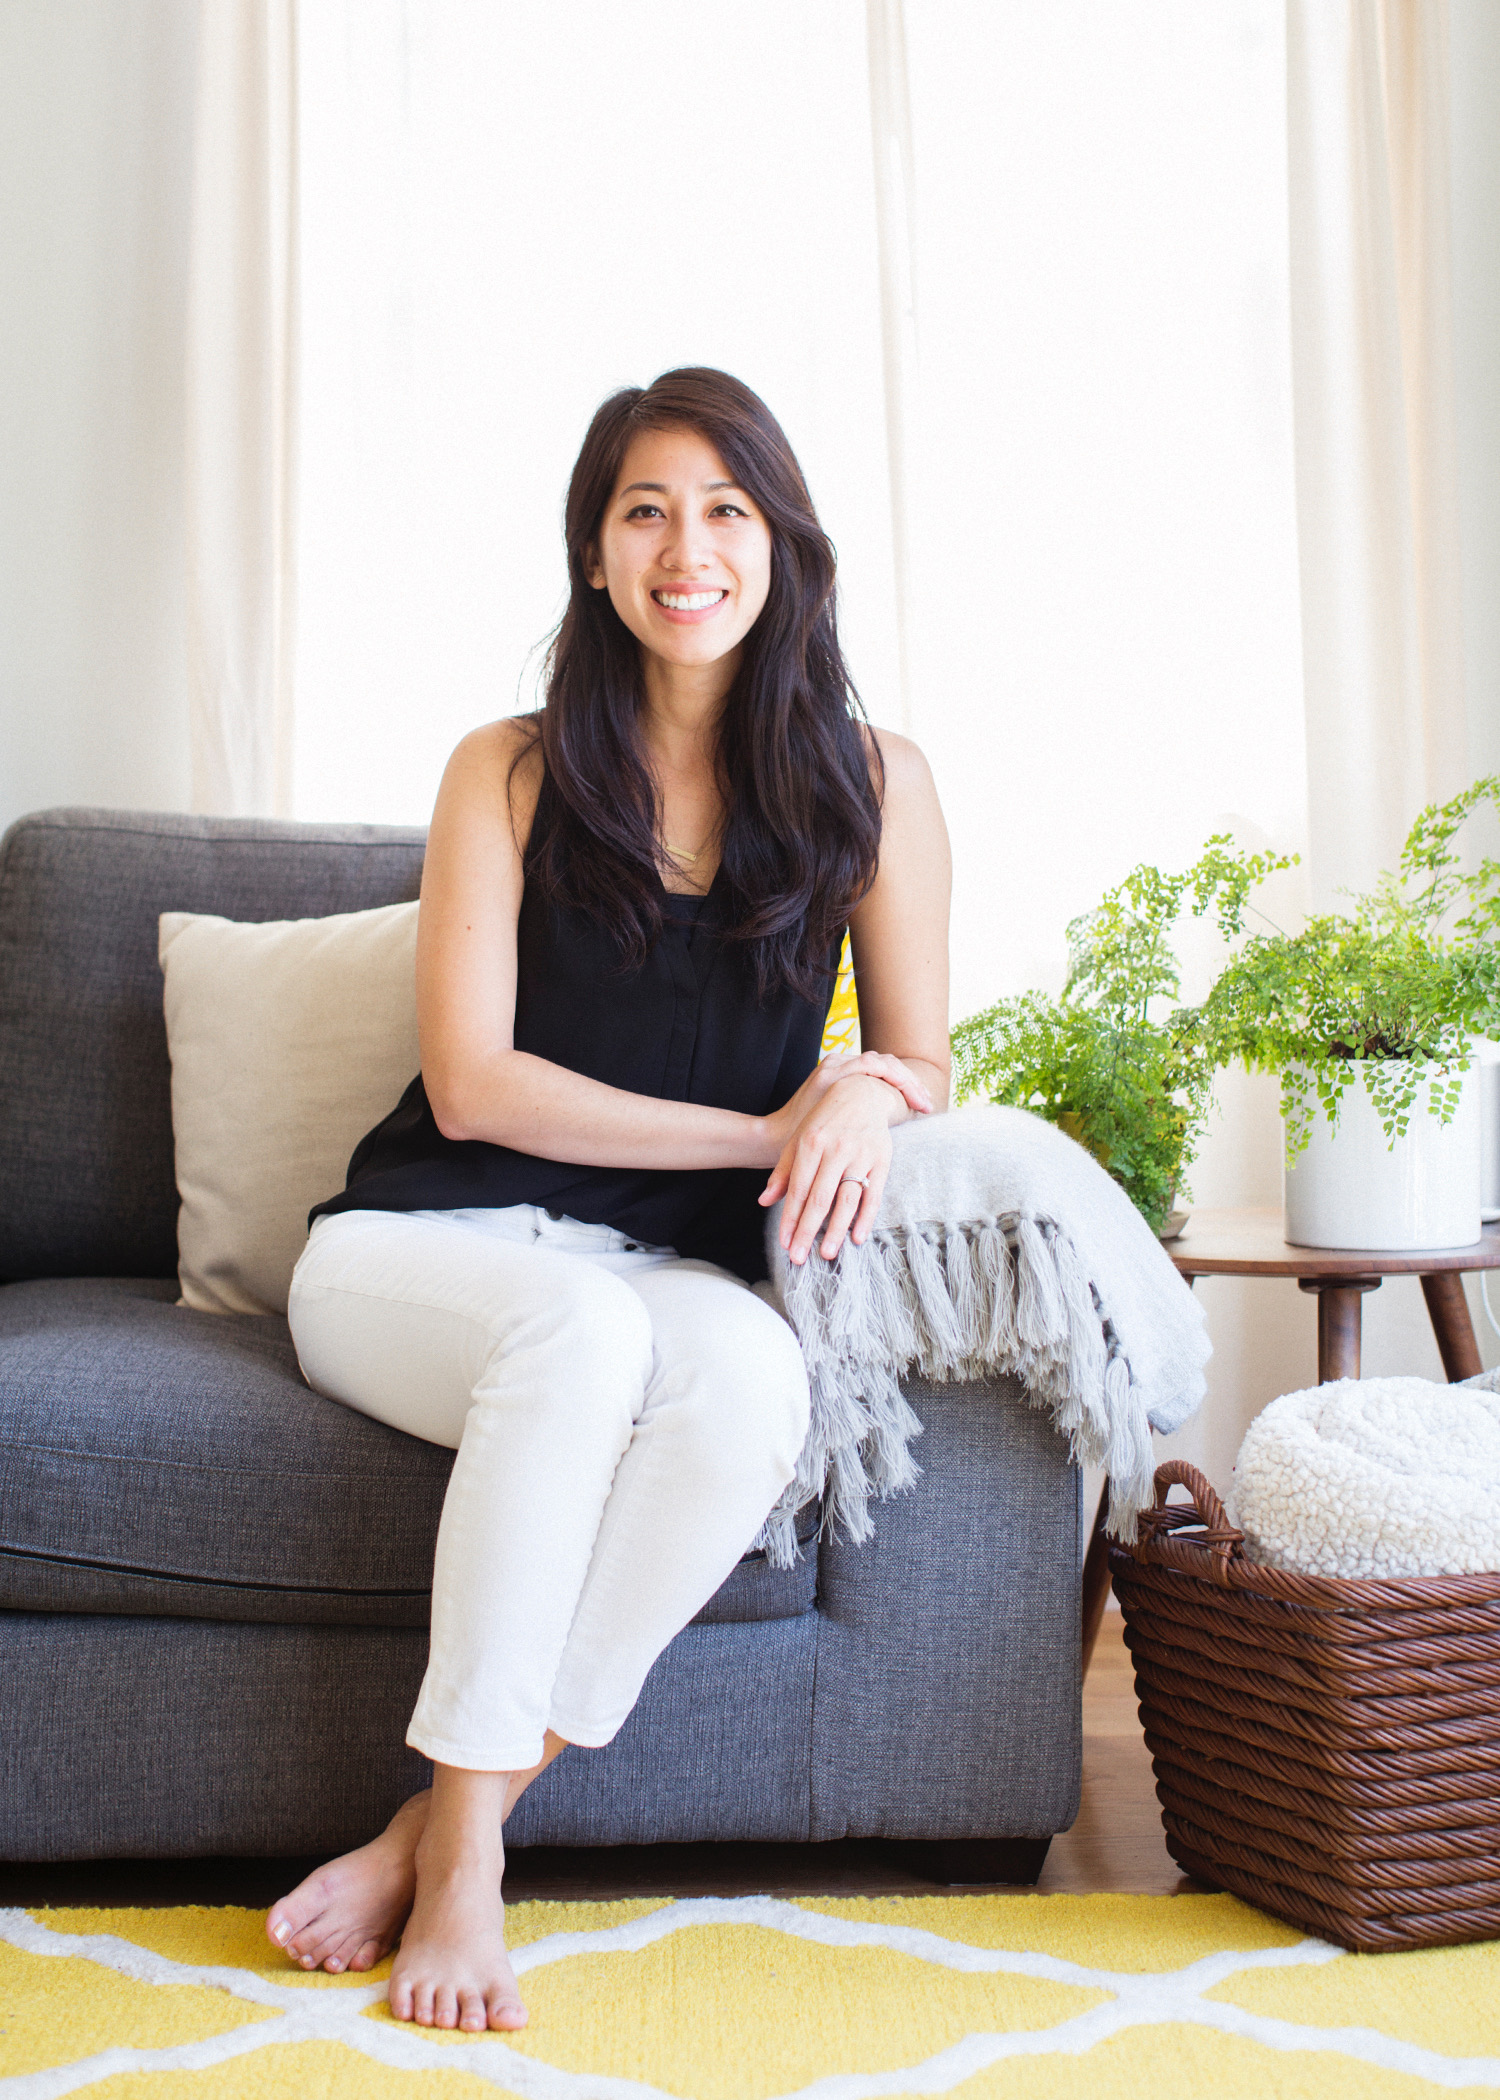 roberta cheng, licensed therapist providing counseling for teens and asian american adults, San Jose, Santa Clara, Silicon Valley, self esteem, depression, anxiety, mental health awareness